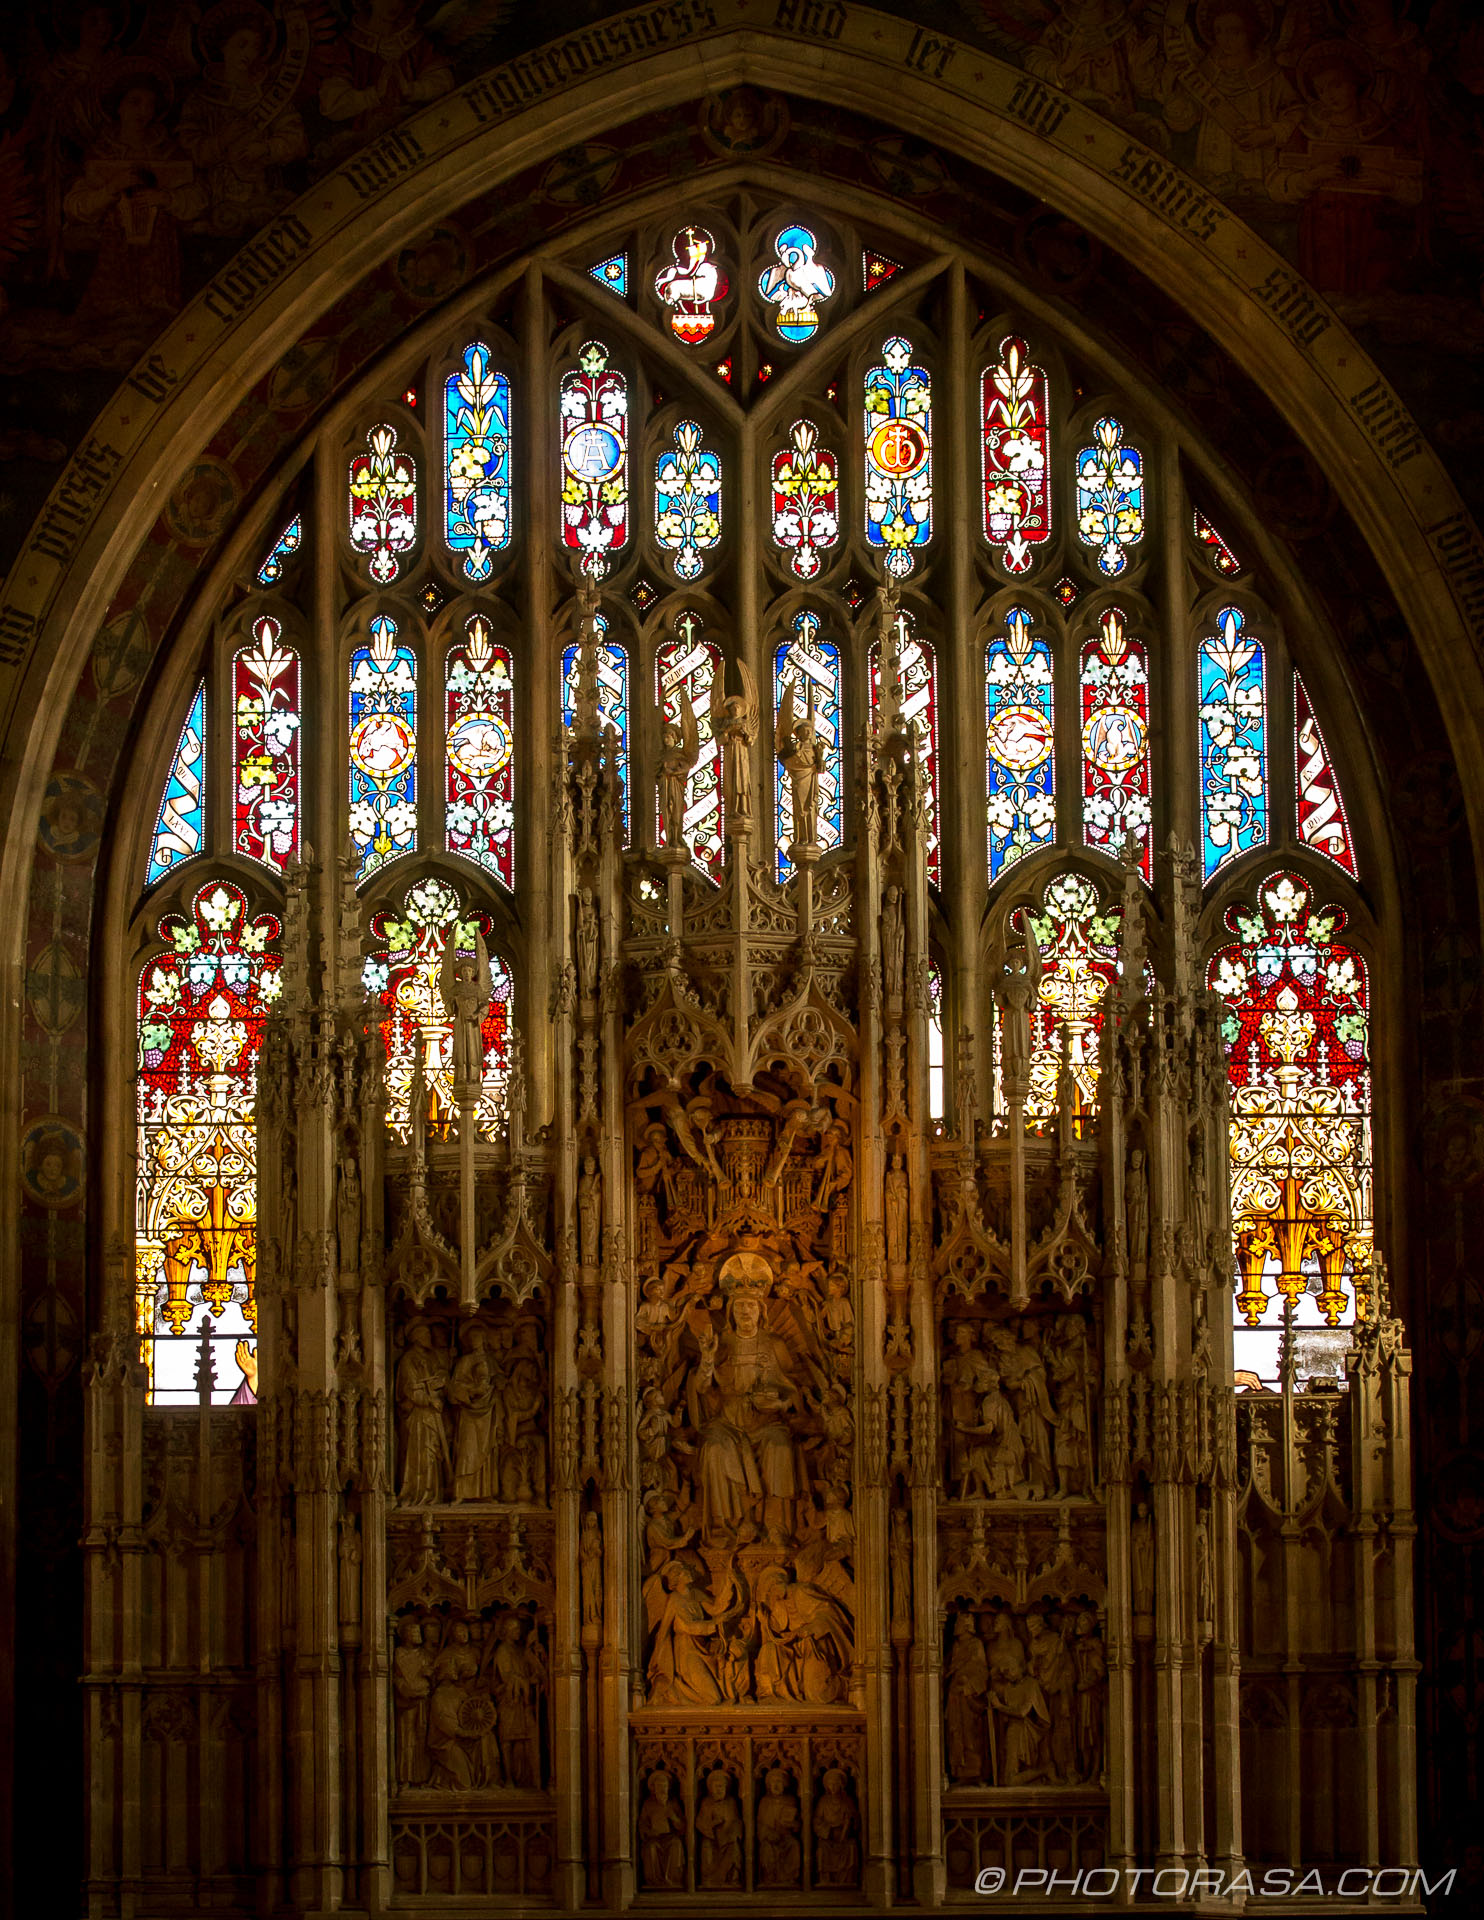 http://photorasa.com/inside-all-saints-church-in-maidstone/all-saints-maidstone-stained-glass-window/